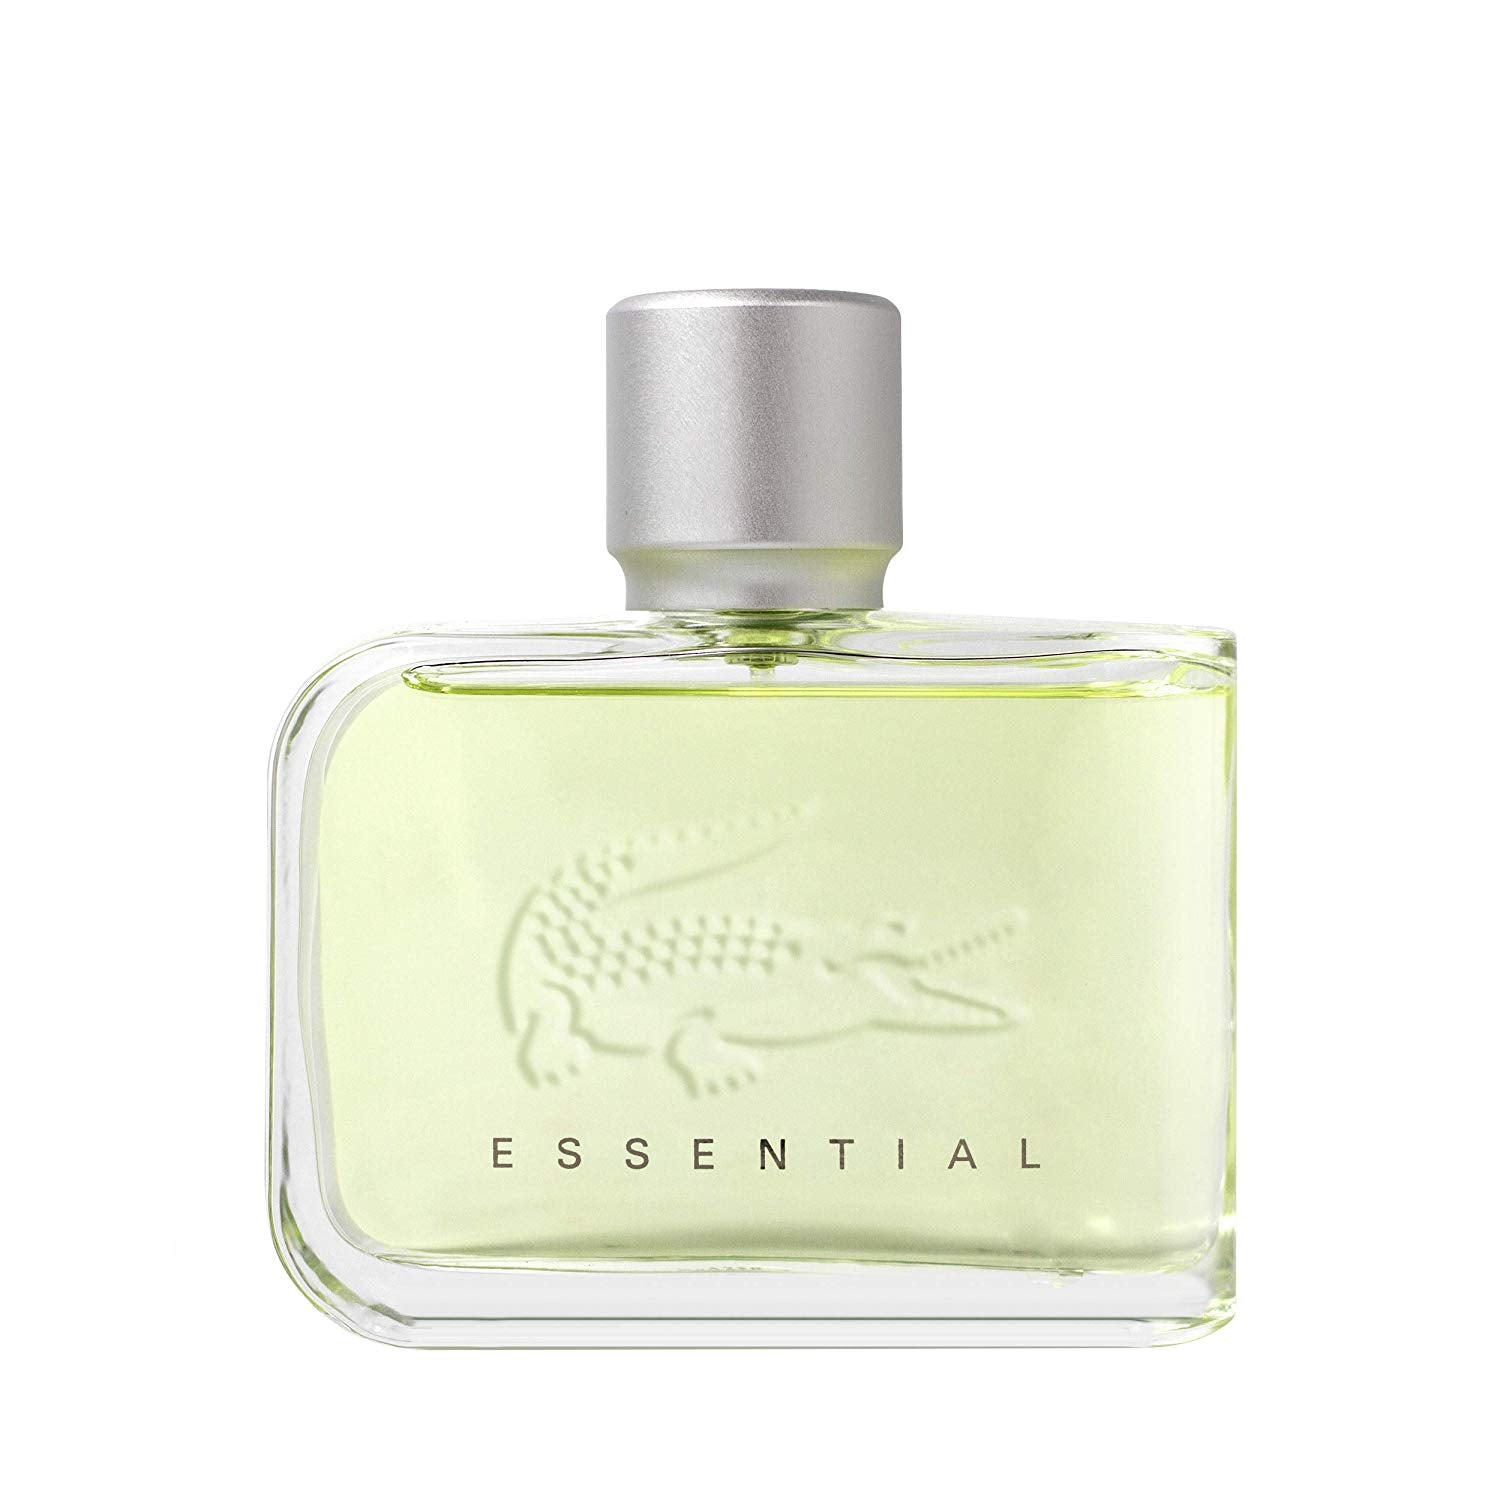 Lacoste Essential for Men, 2.5 oz EDT Spray